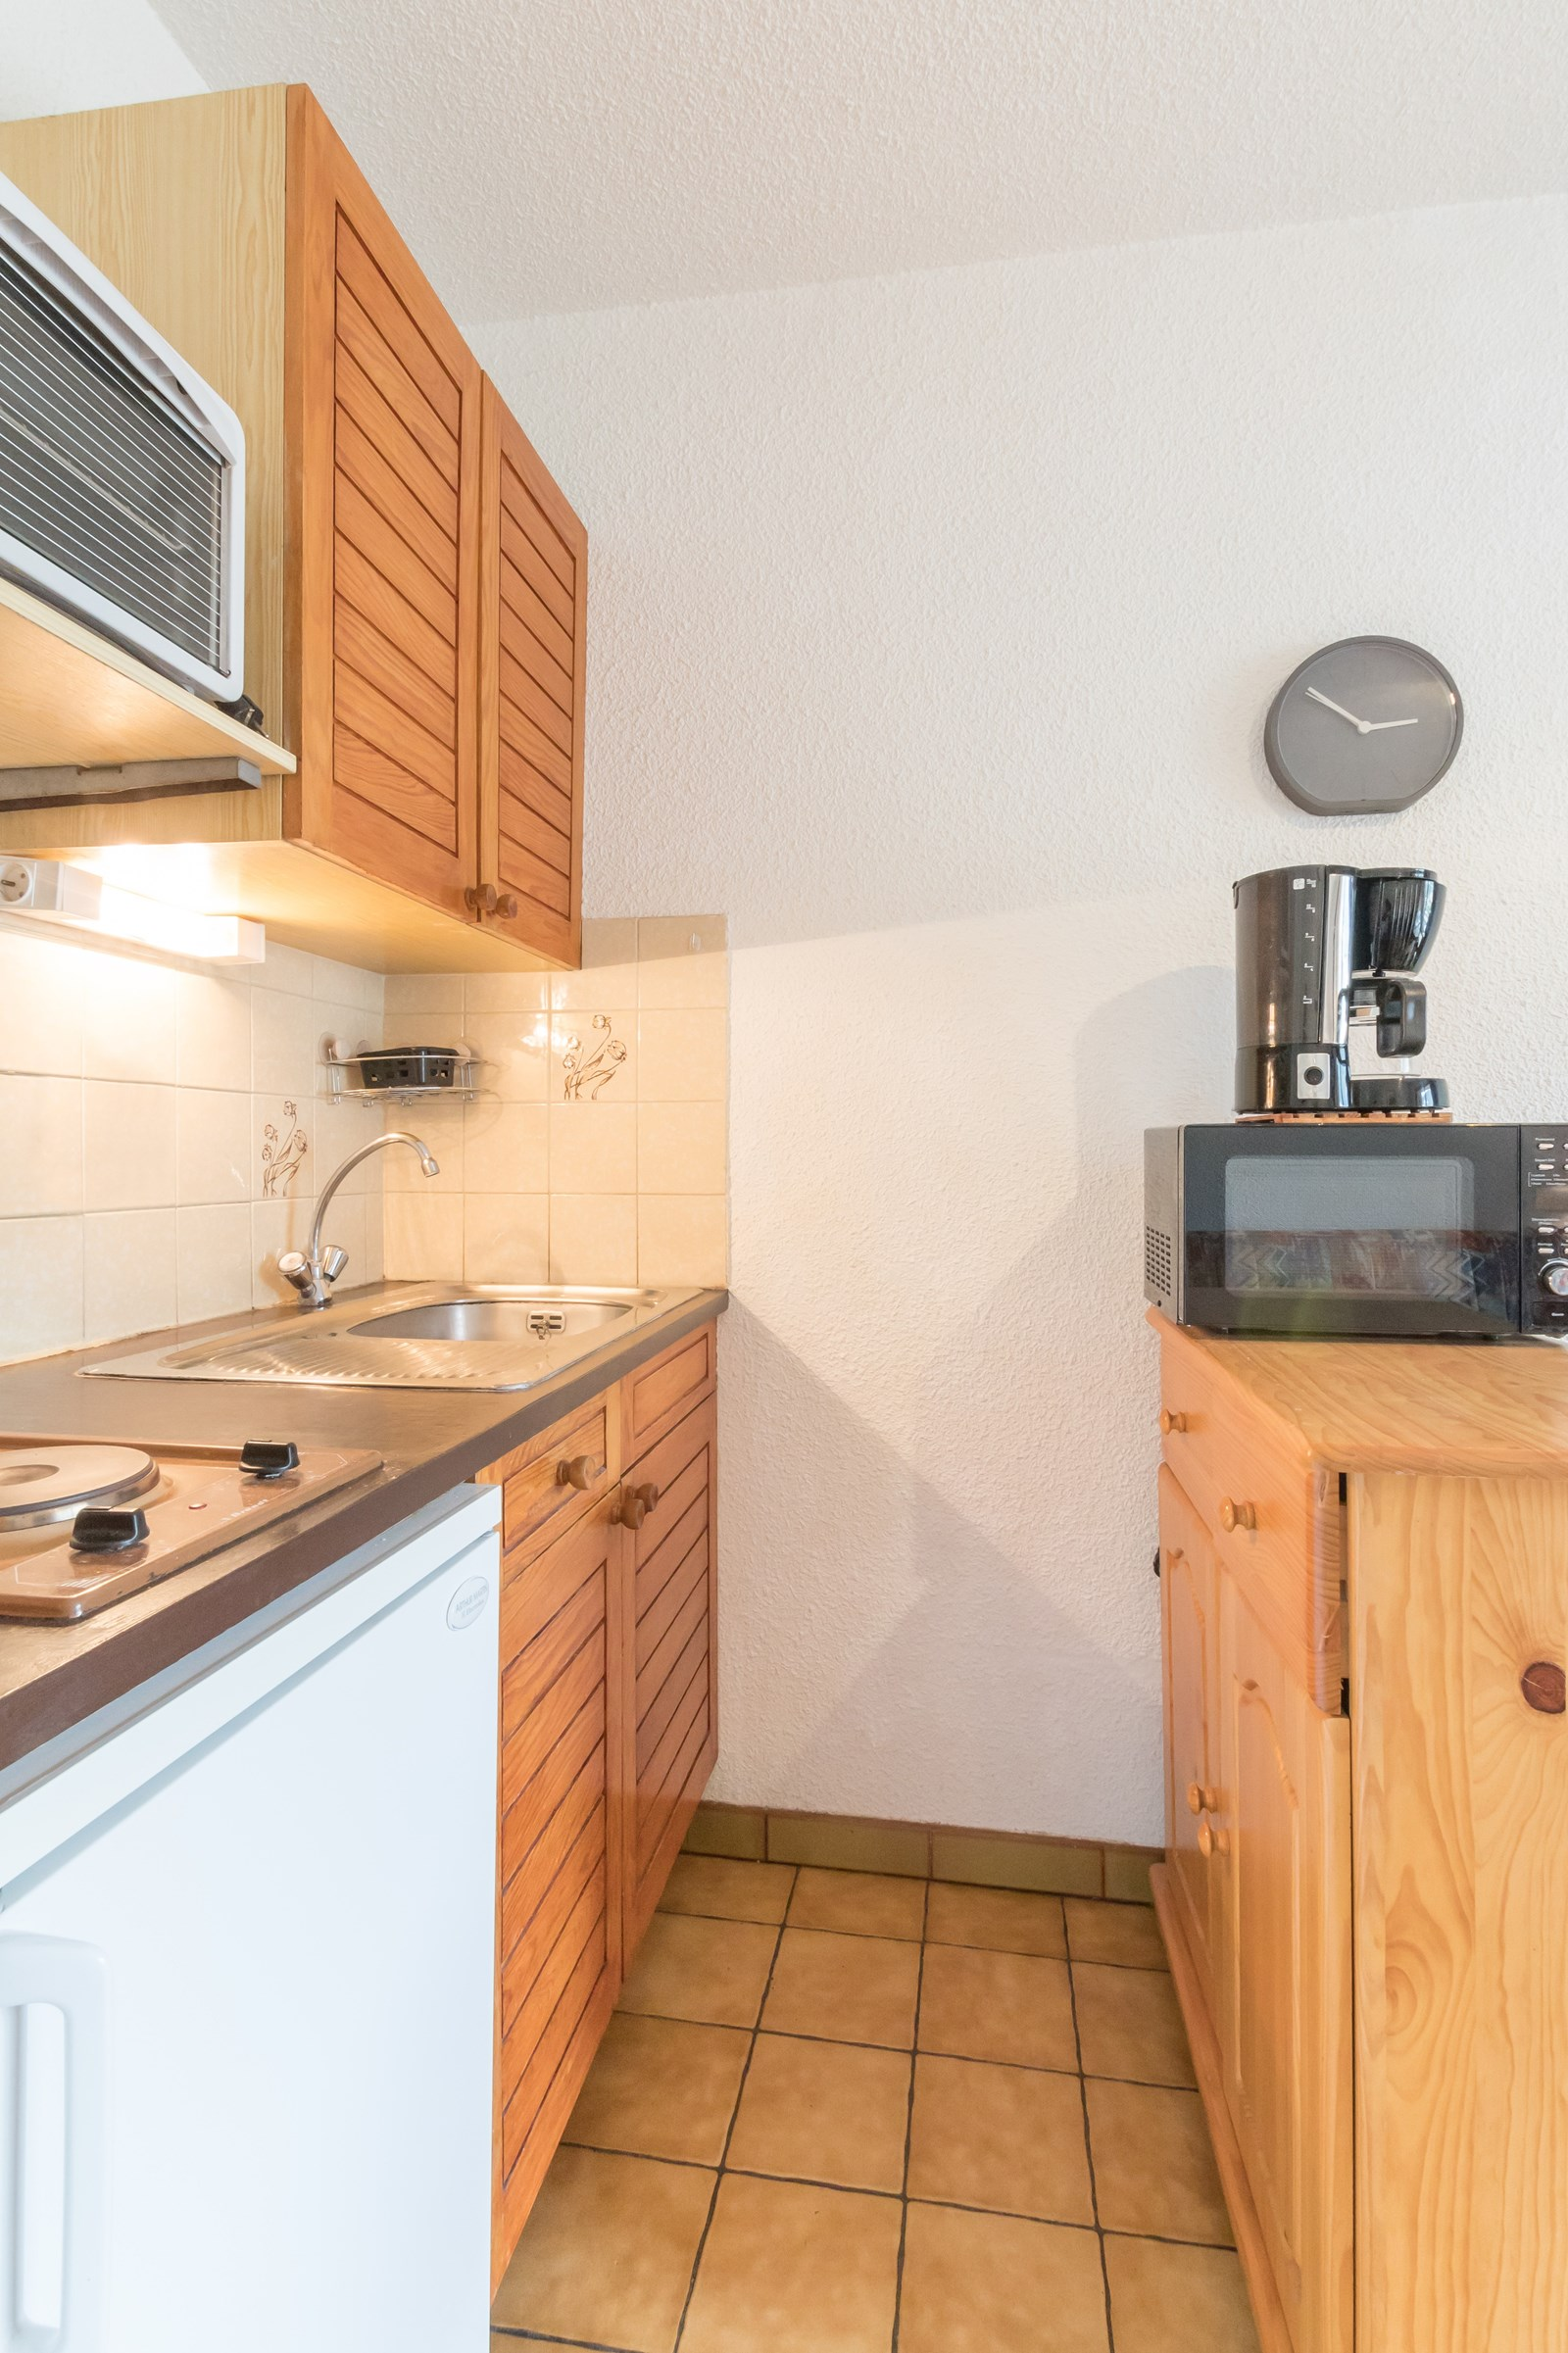 Appartement Balcons De Briancon C BRI400-C233